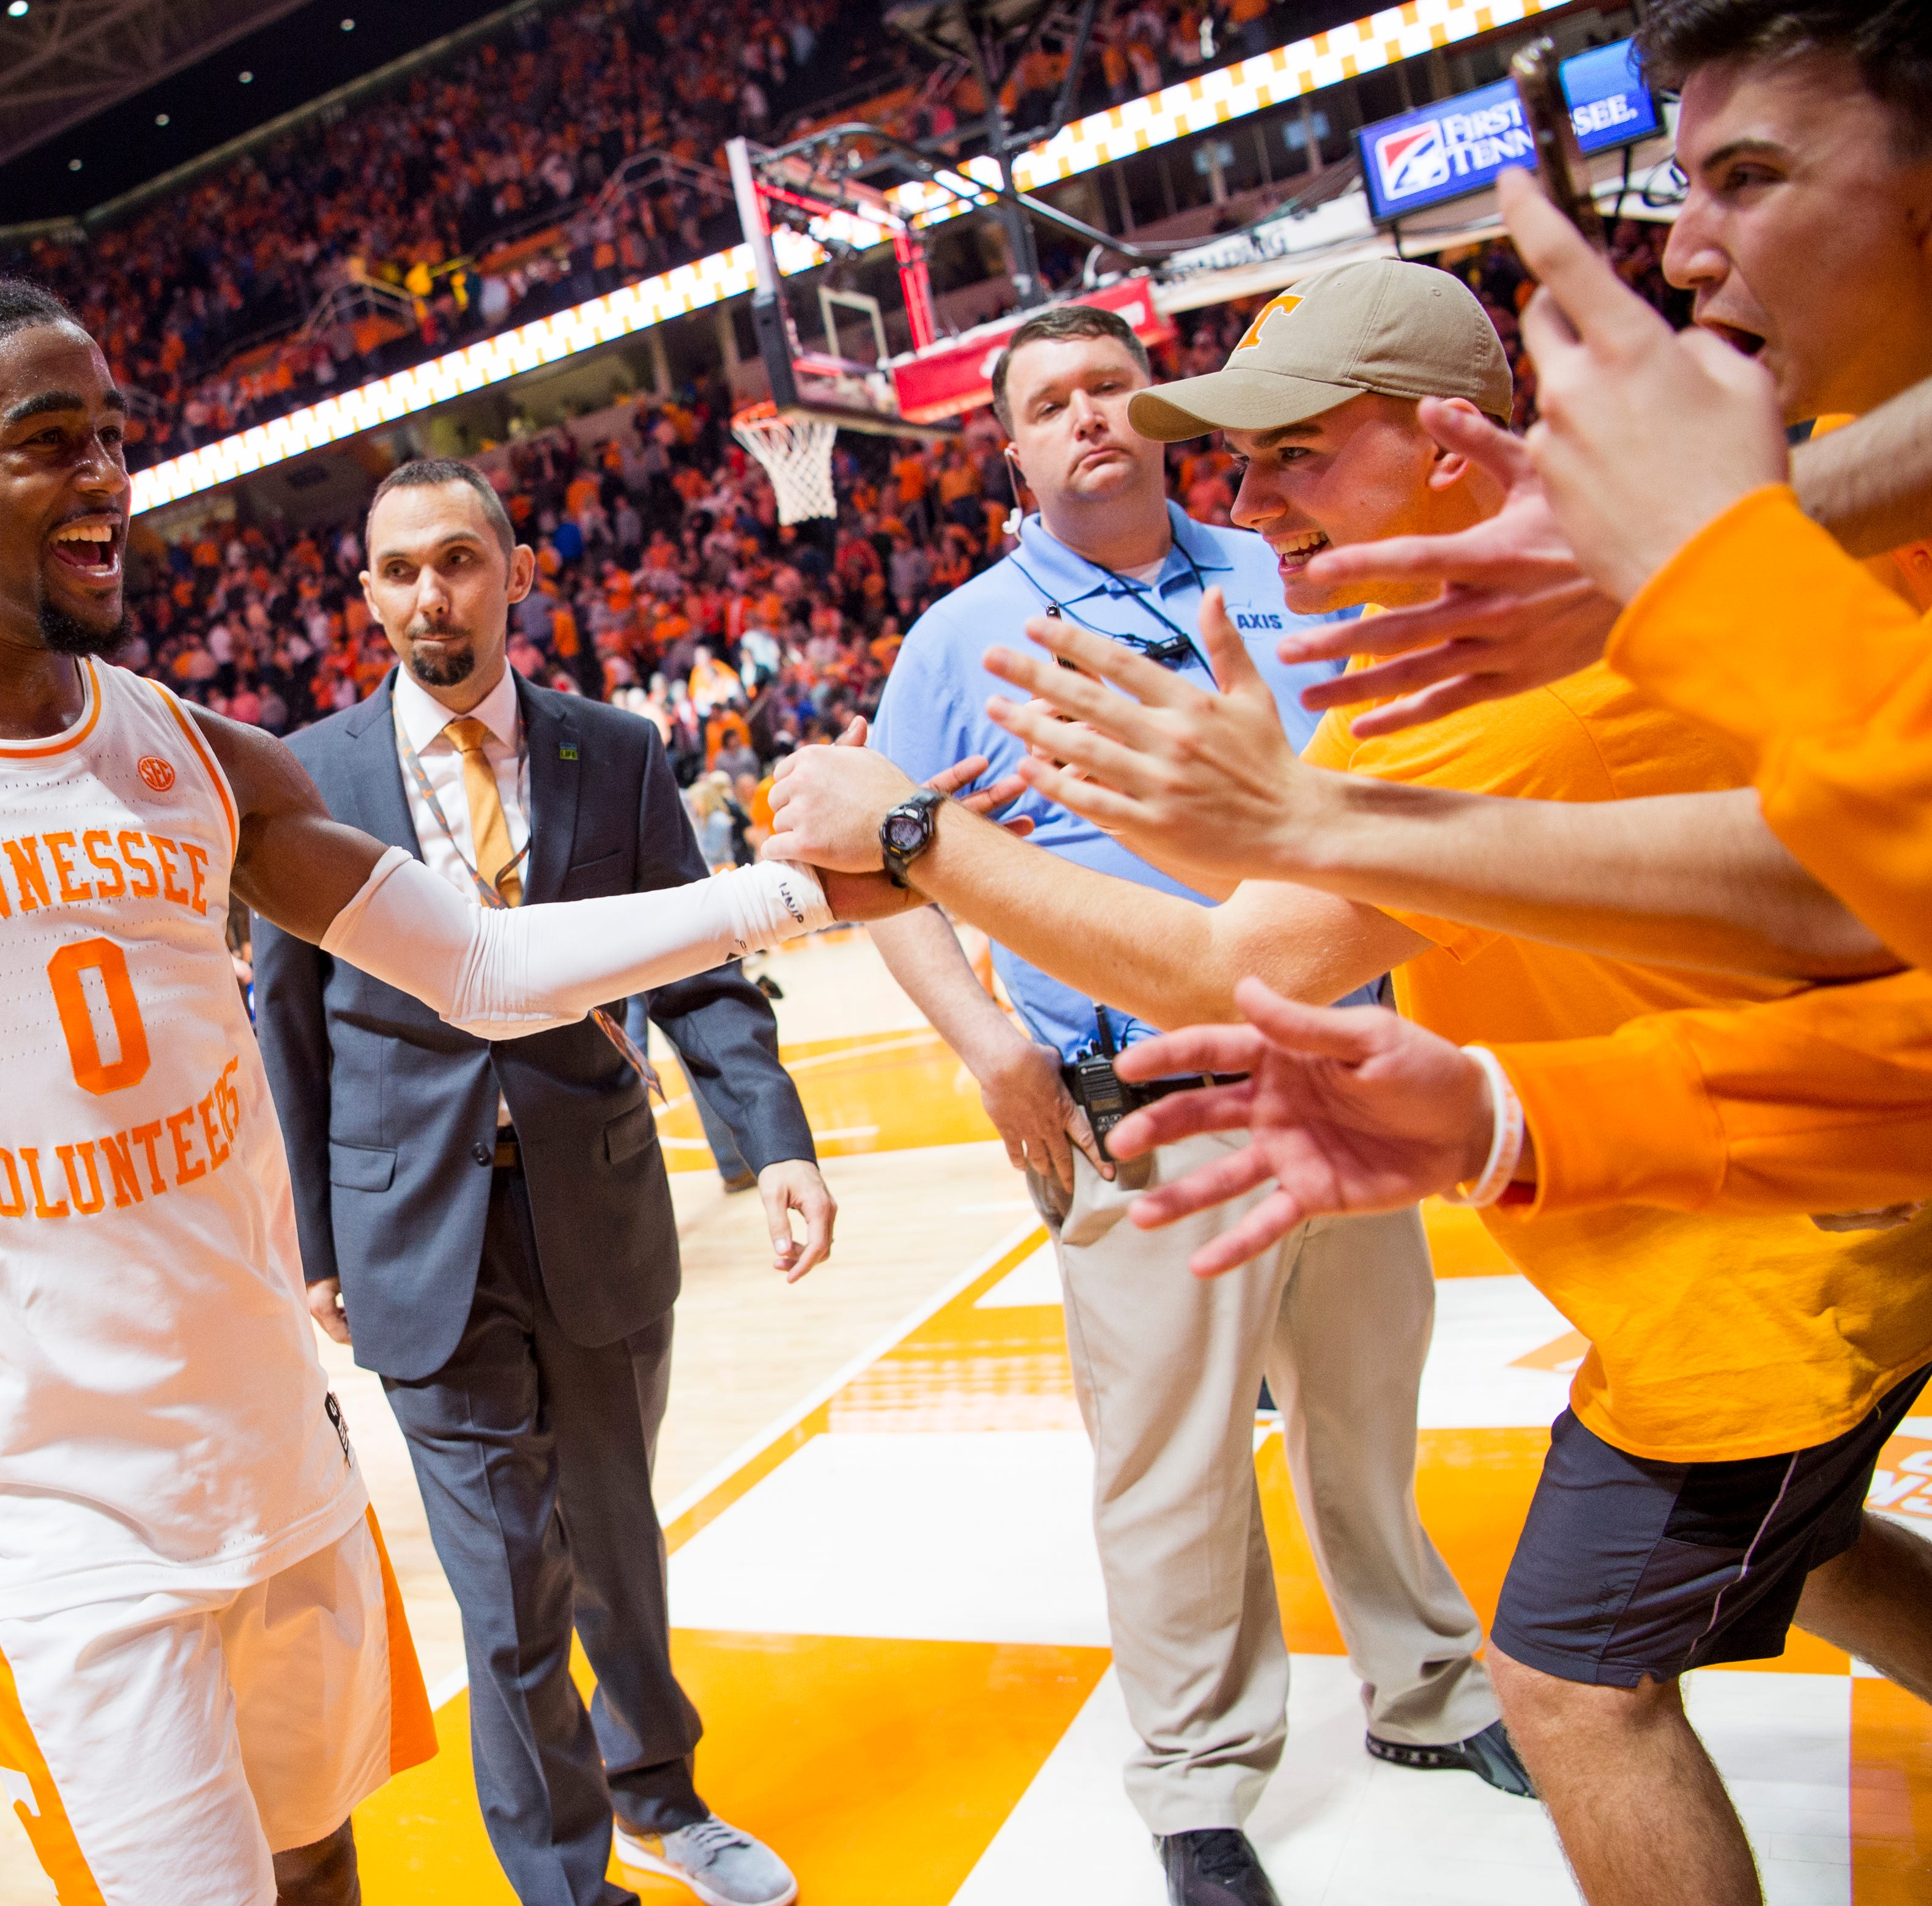 Tennessee basketball destroys Kentucky, so are we all going to overreact again?